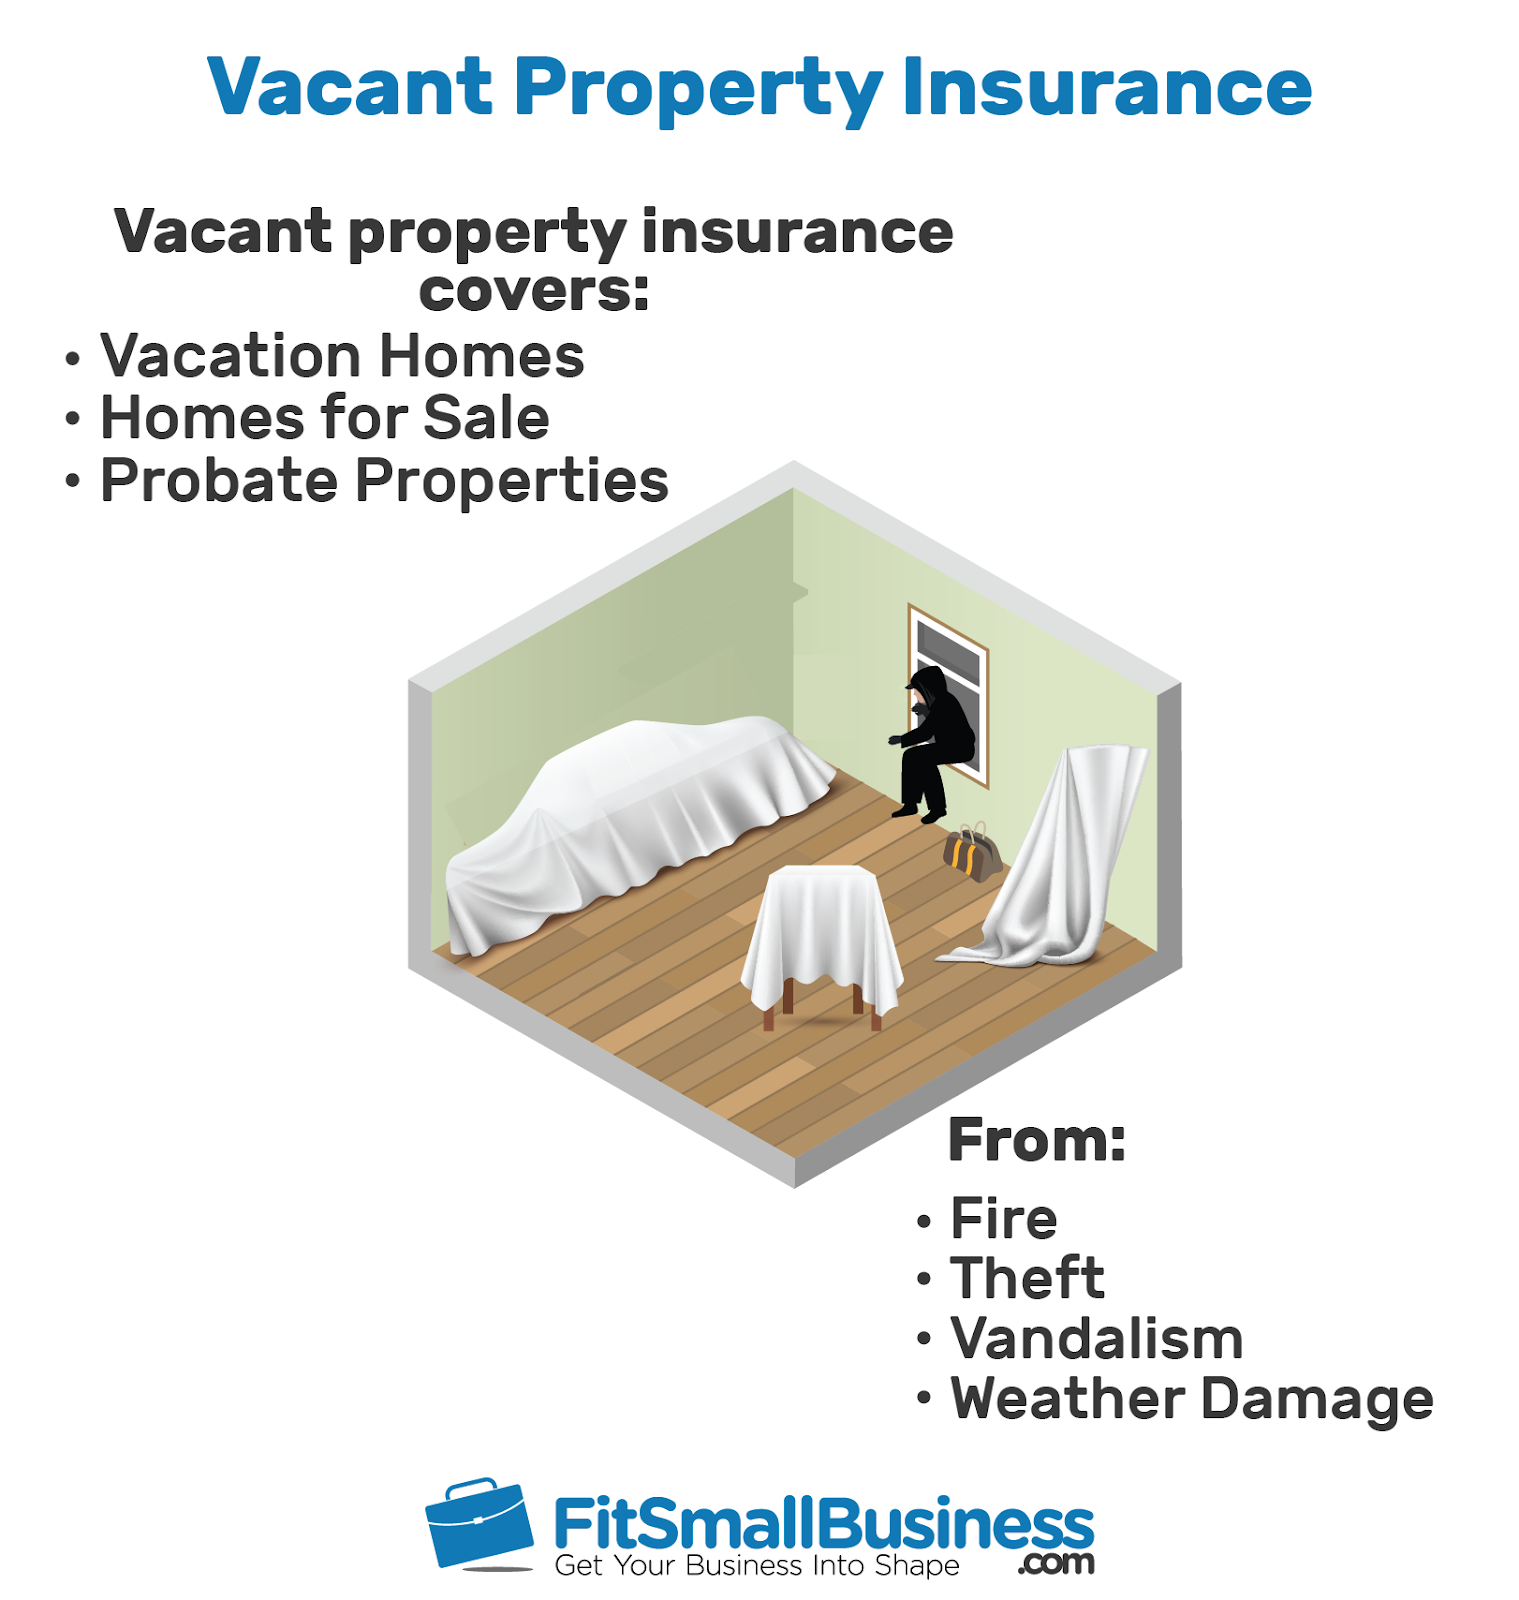 vacant property insurance covers vacation homes, homes for sale, and probate properties from fire, theft, vandalism, and weather damage